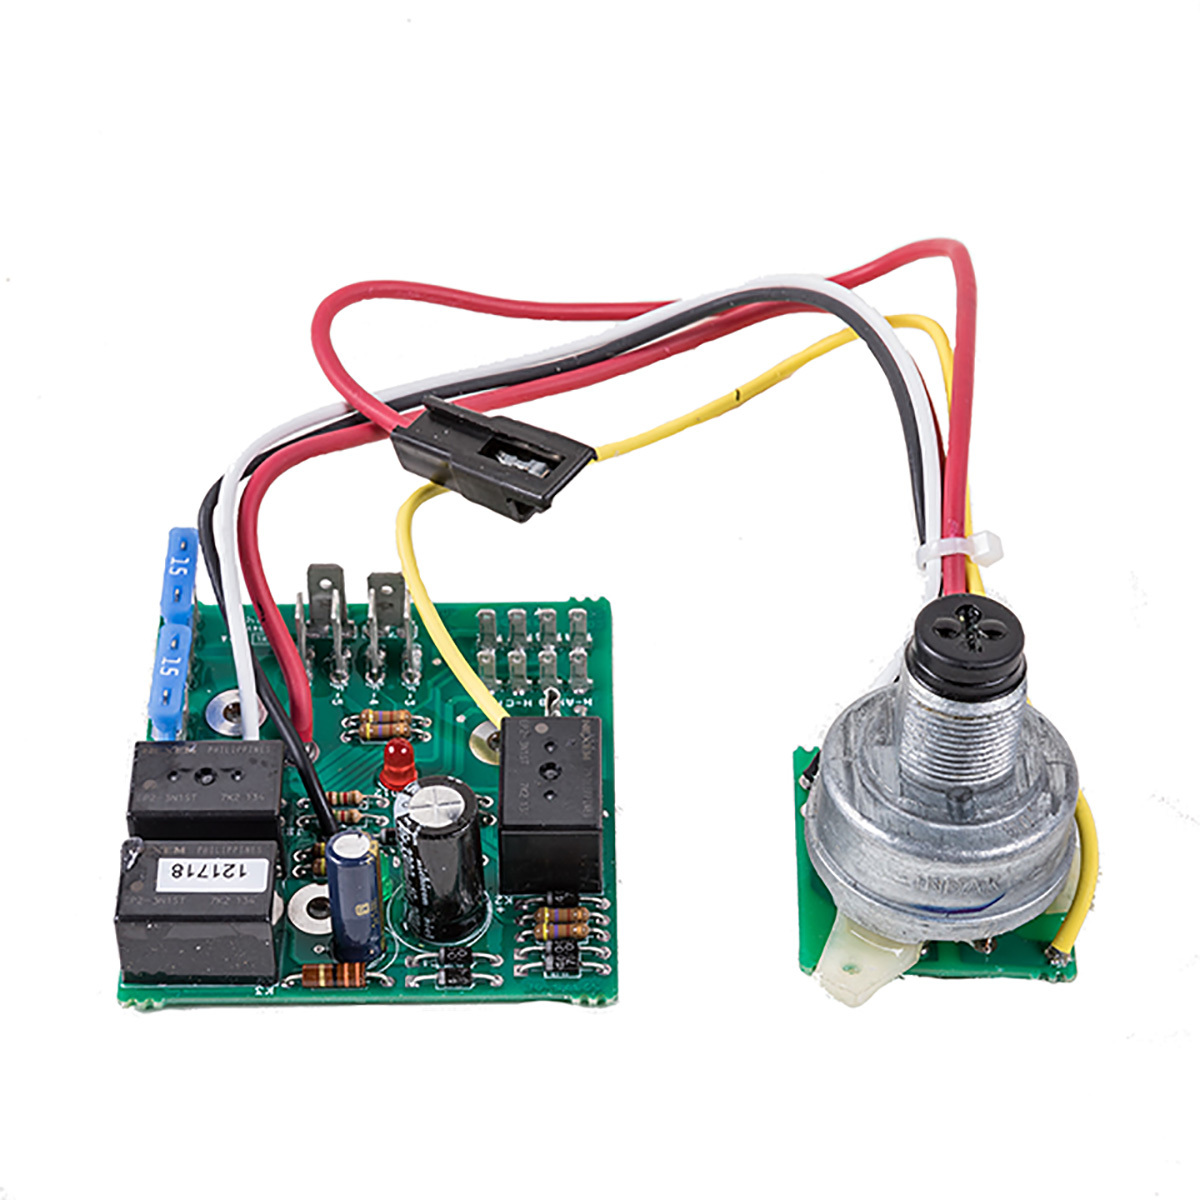 Ignition Module and Key Switch for 300, GT, GX, LX, and X400 Series Riding  Lawn Mowers